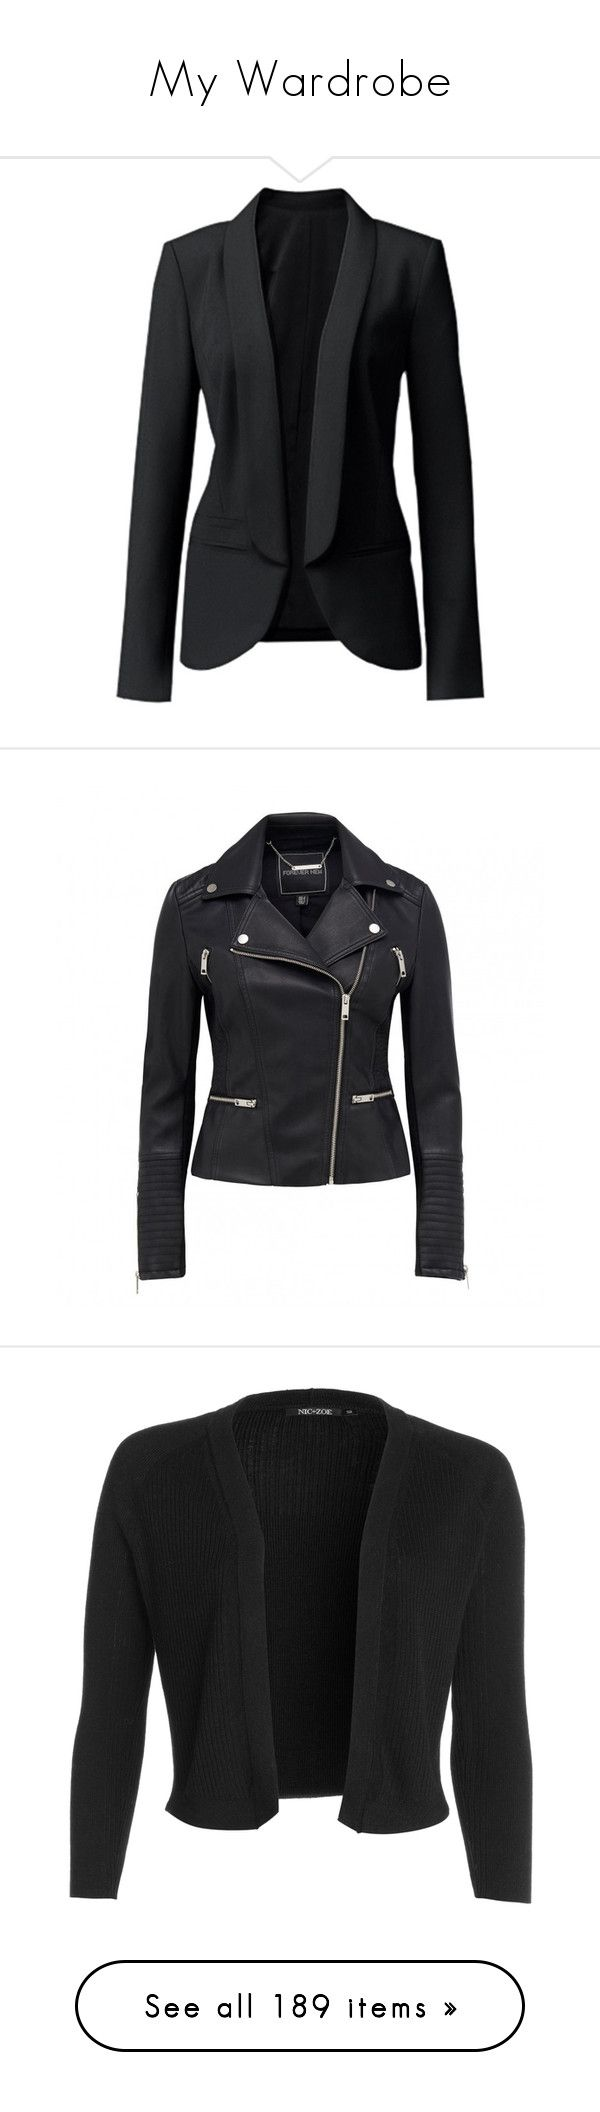 """""""My Wardrobe"""" by briony-jae ❤ liked on Polyvore featuring outerwear, jackets, blazers, coats, purple blazers, purple blazer jacket, open front blazer, lapel jacket, open front jacket and coats & jackets"""